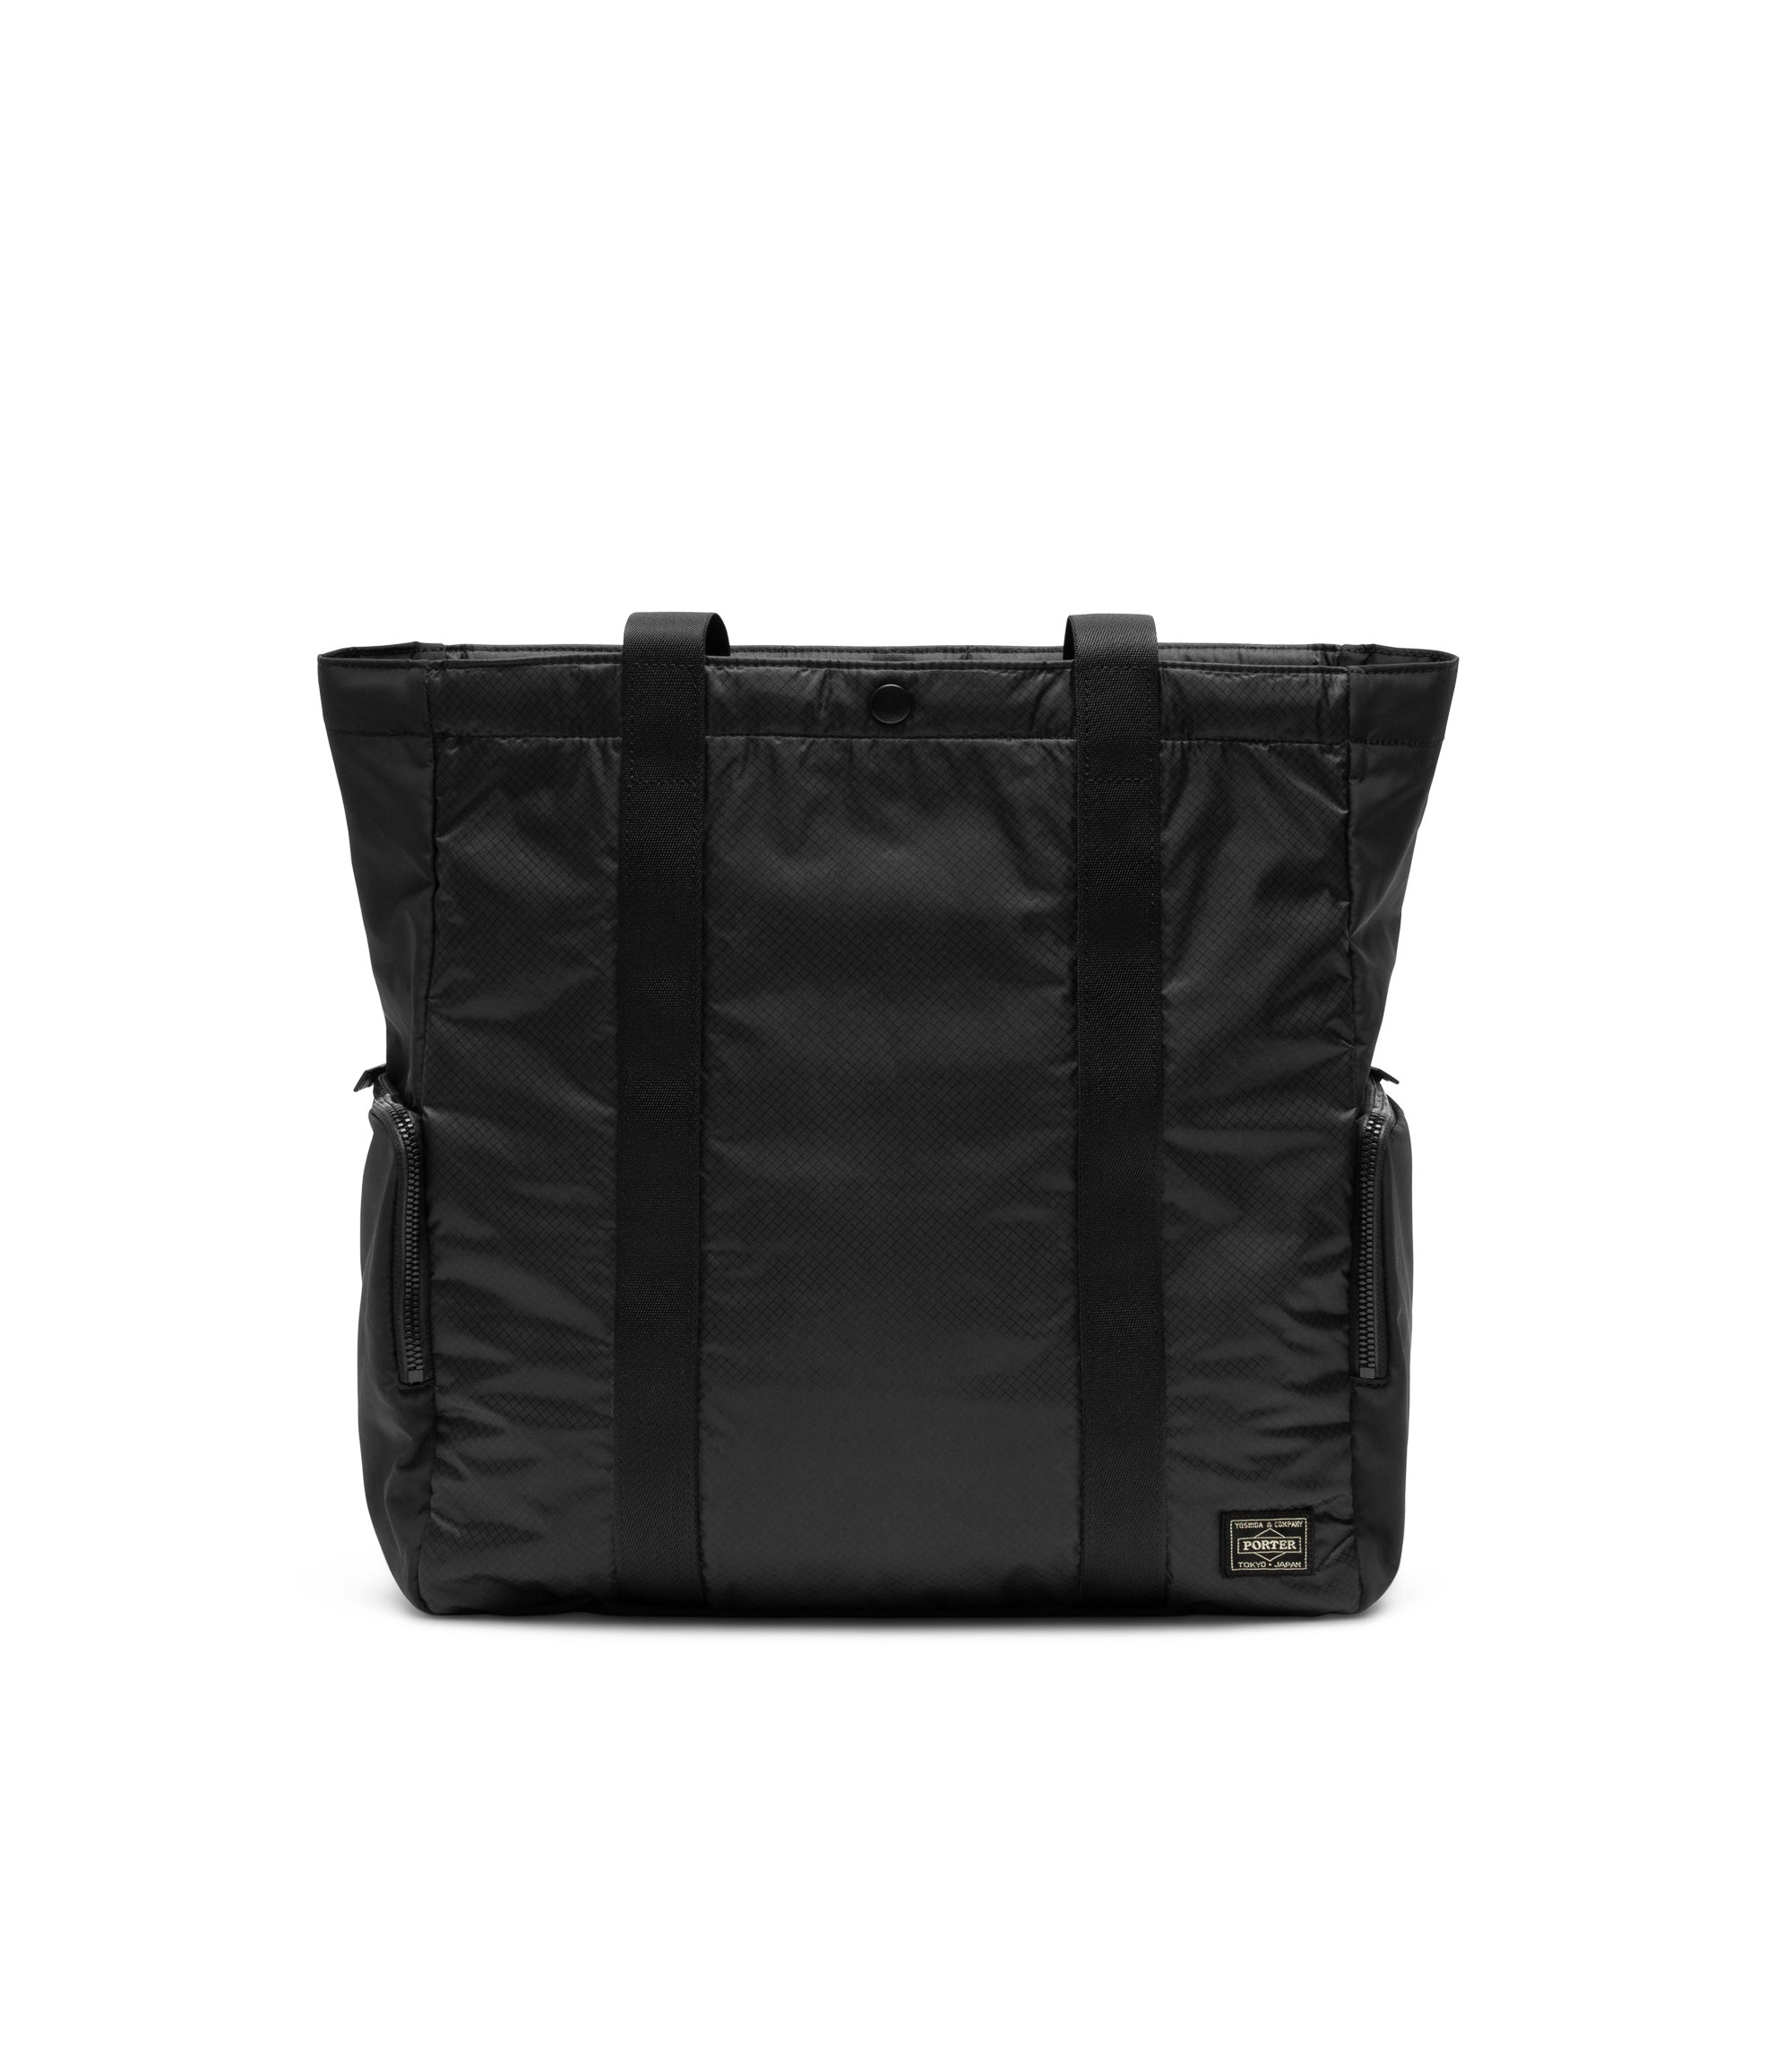 c6c8e885a8a7 Porter X Wingshorns Tote Bag Wingshorns